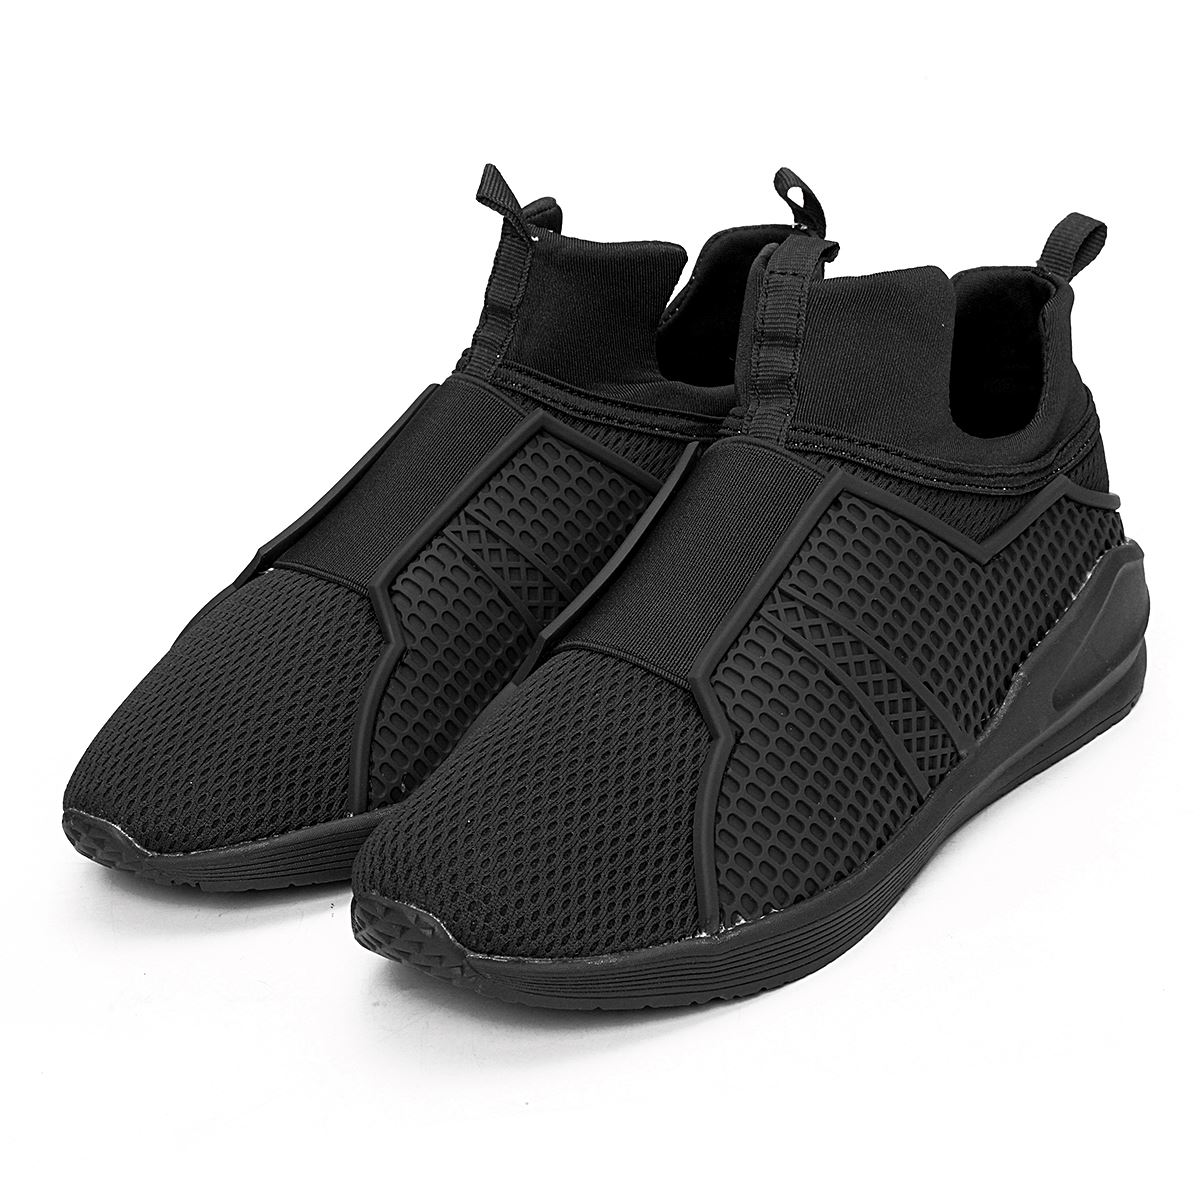 ФОТО Spring Autumn New Men's Breathable Casual Flats Shoes  Mesh Slip On Elastic Strap Men Shoes Hip Top Male Walking Footwear